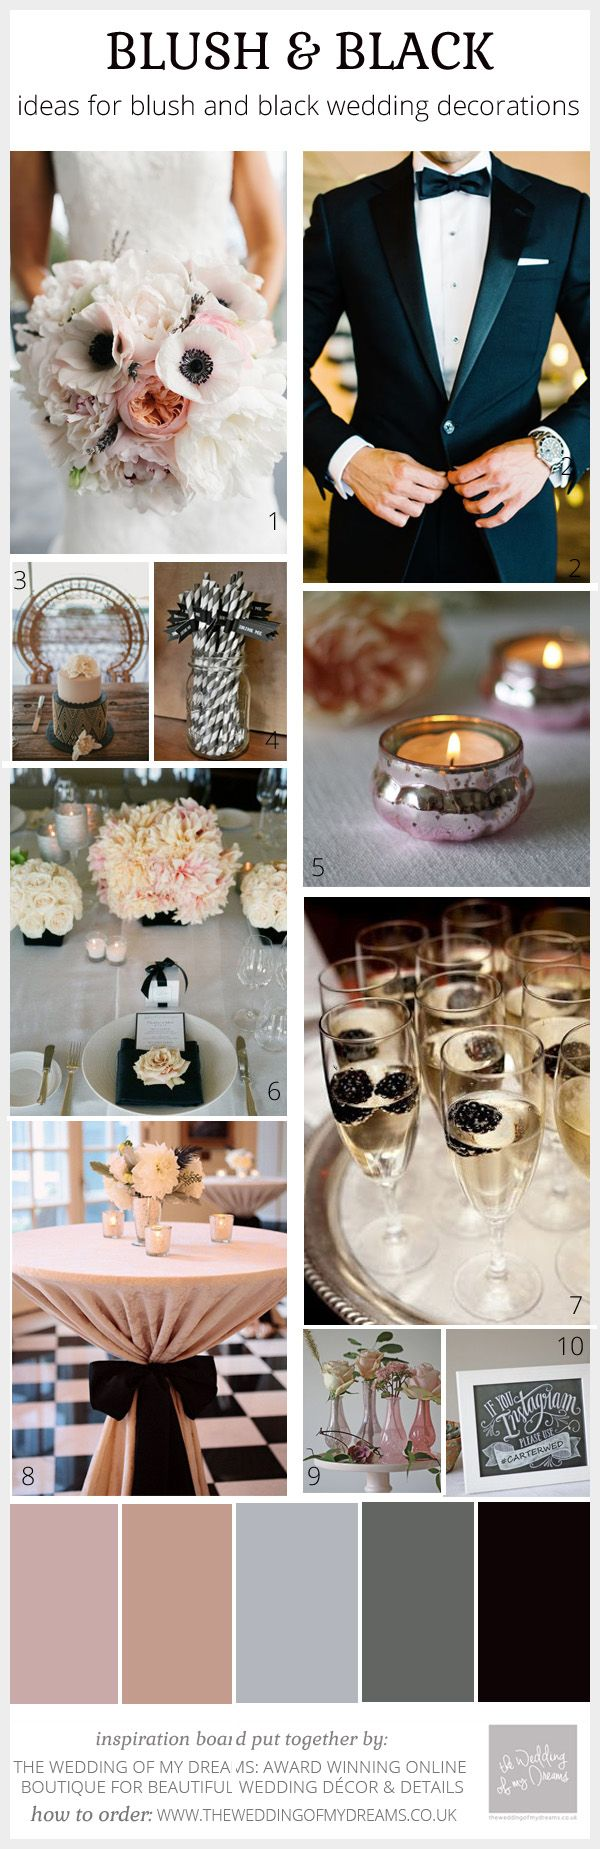 Blush pink black wedding ideas decorations and inspiration why not have your dream 20162017 luxury wedding in north cyprus with over 20 yrs planning management experience we can make your dream a reality junglespirit Choice Image